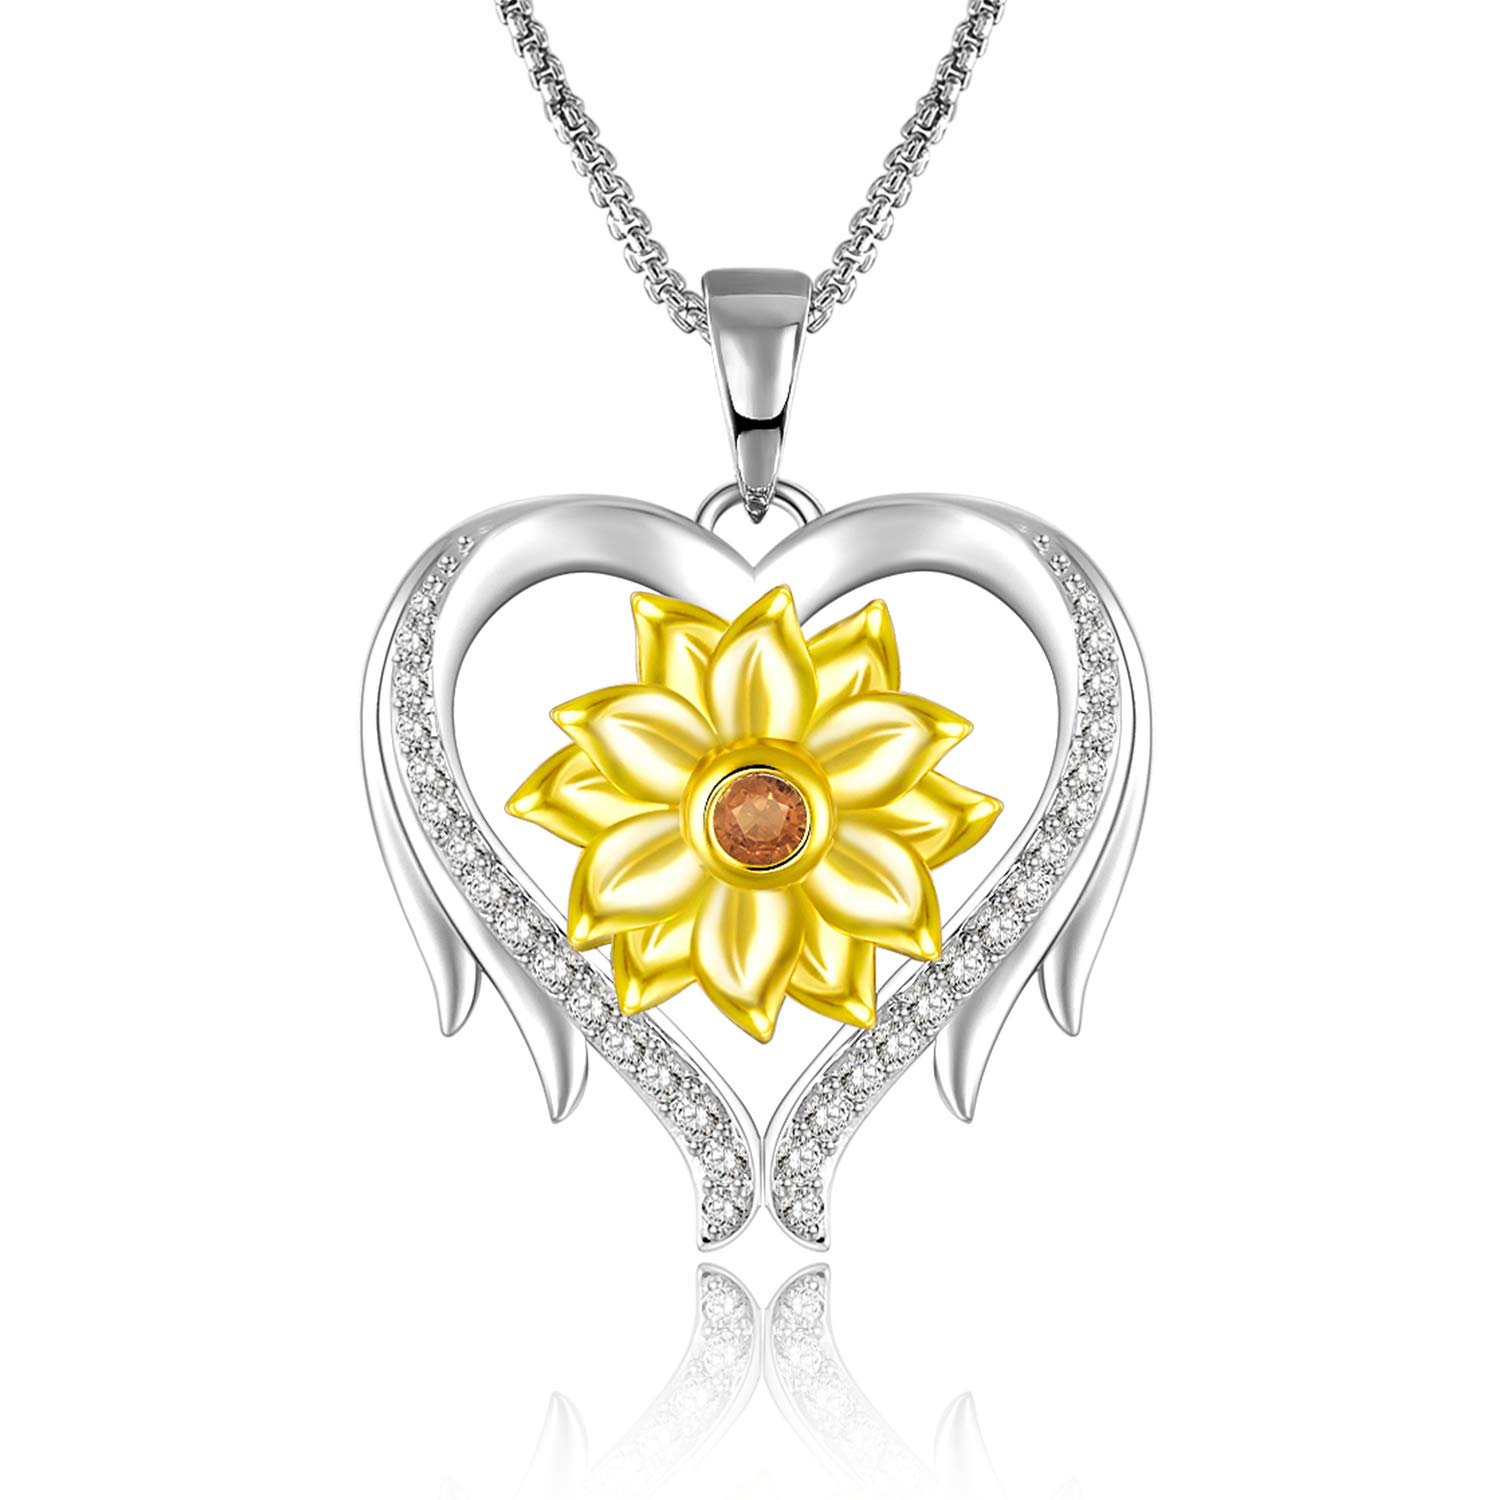 GEORGE · SMITH Sunflower Love Heart Pendant Necklace Gold Plated Flower Necklace You are My Sunshine Necklace Jewelry Christmas Birthday Gifts for Women Girls-Gold